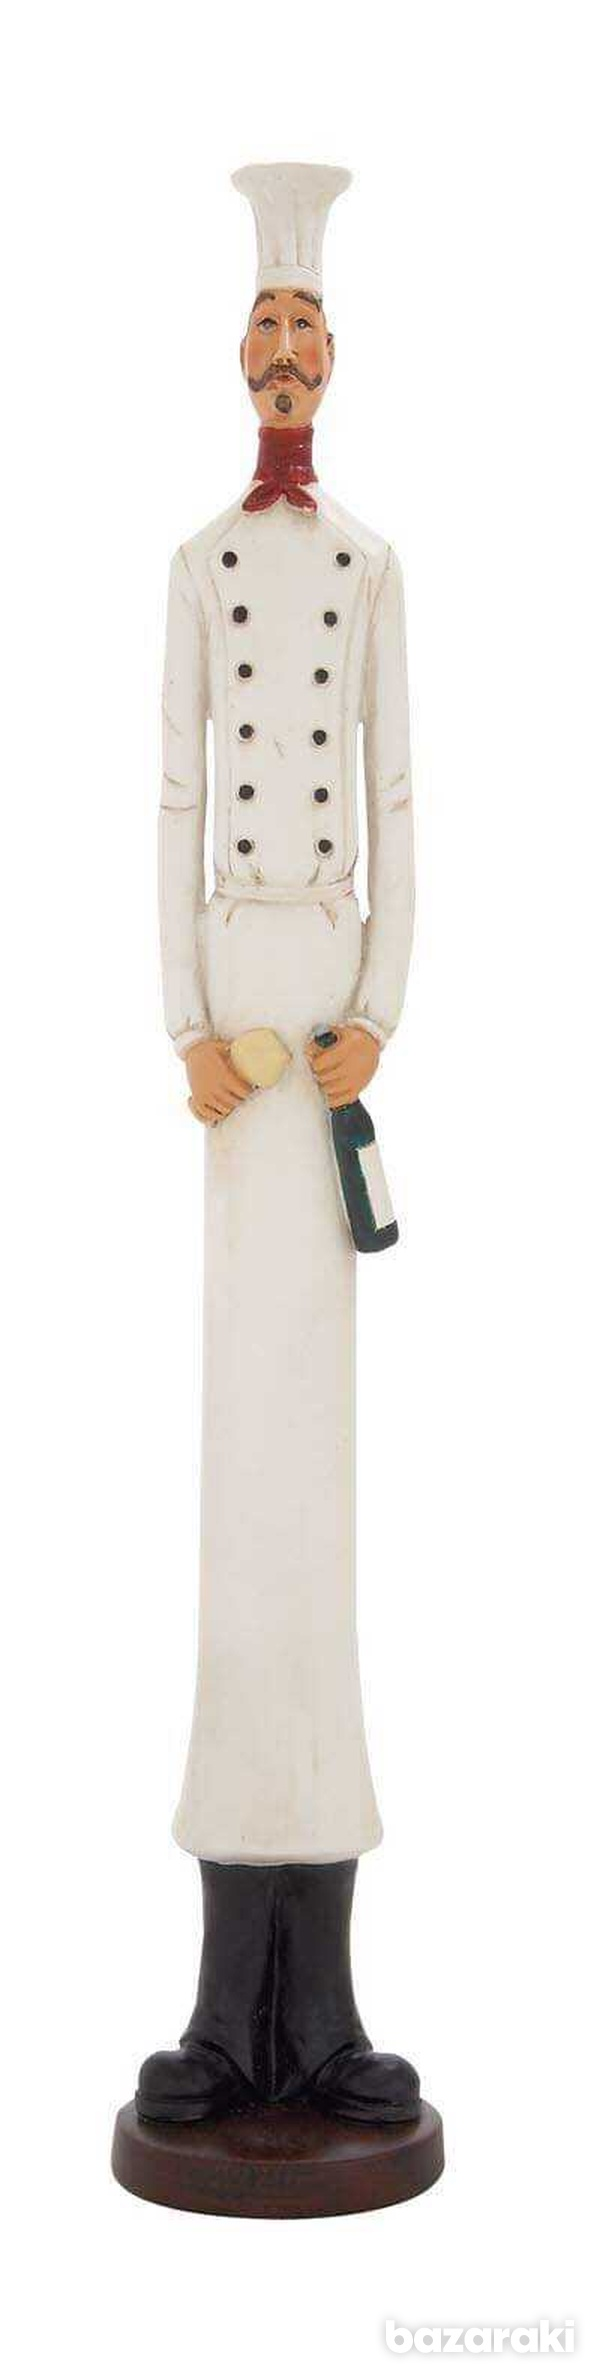 Tall chef figurine 79cm height-1